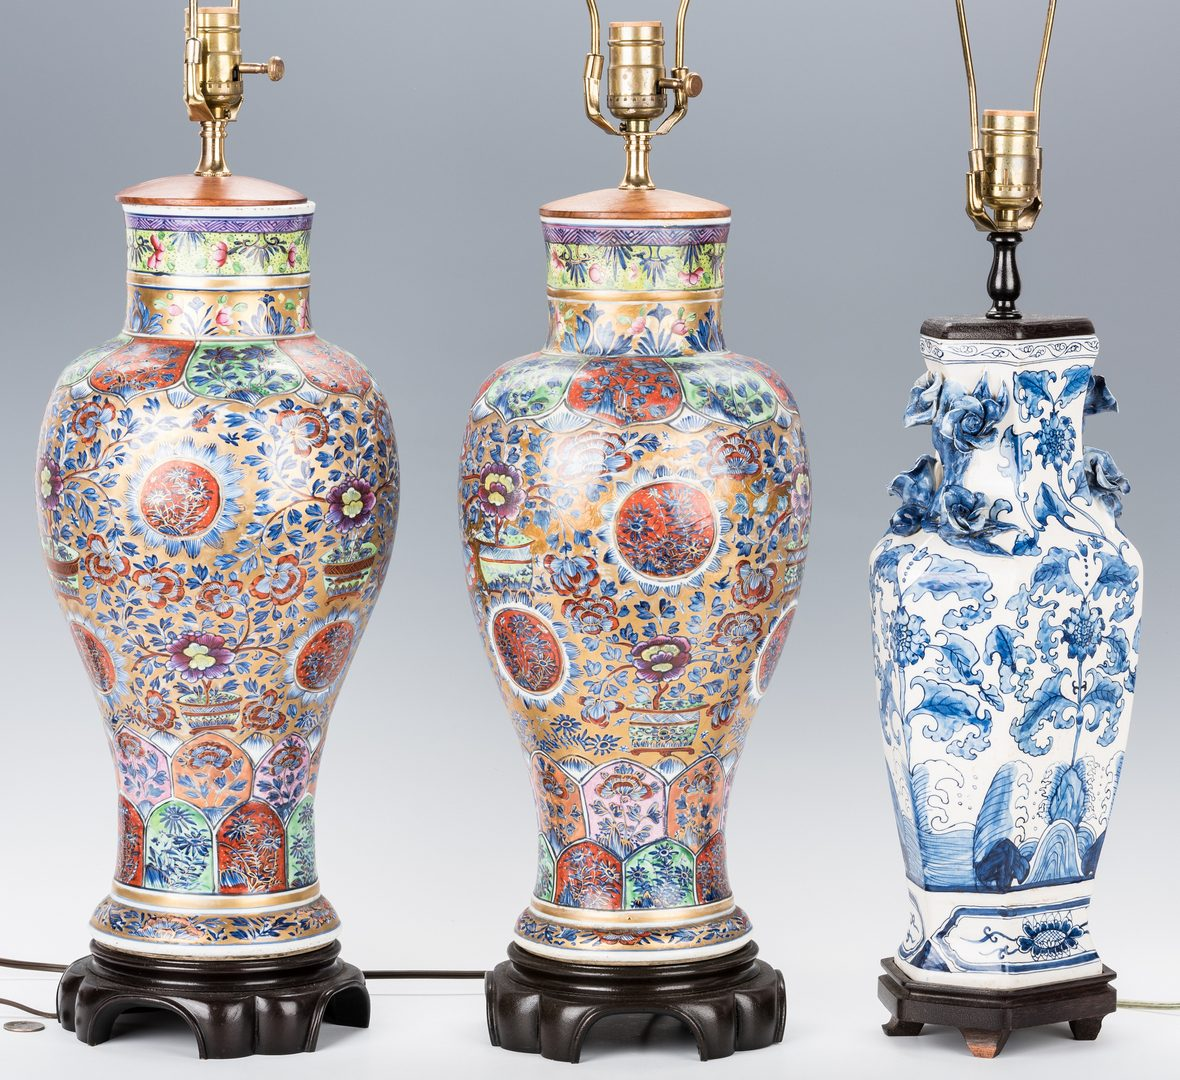 Lot 757: 3 Chinese Porcelain Lamps